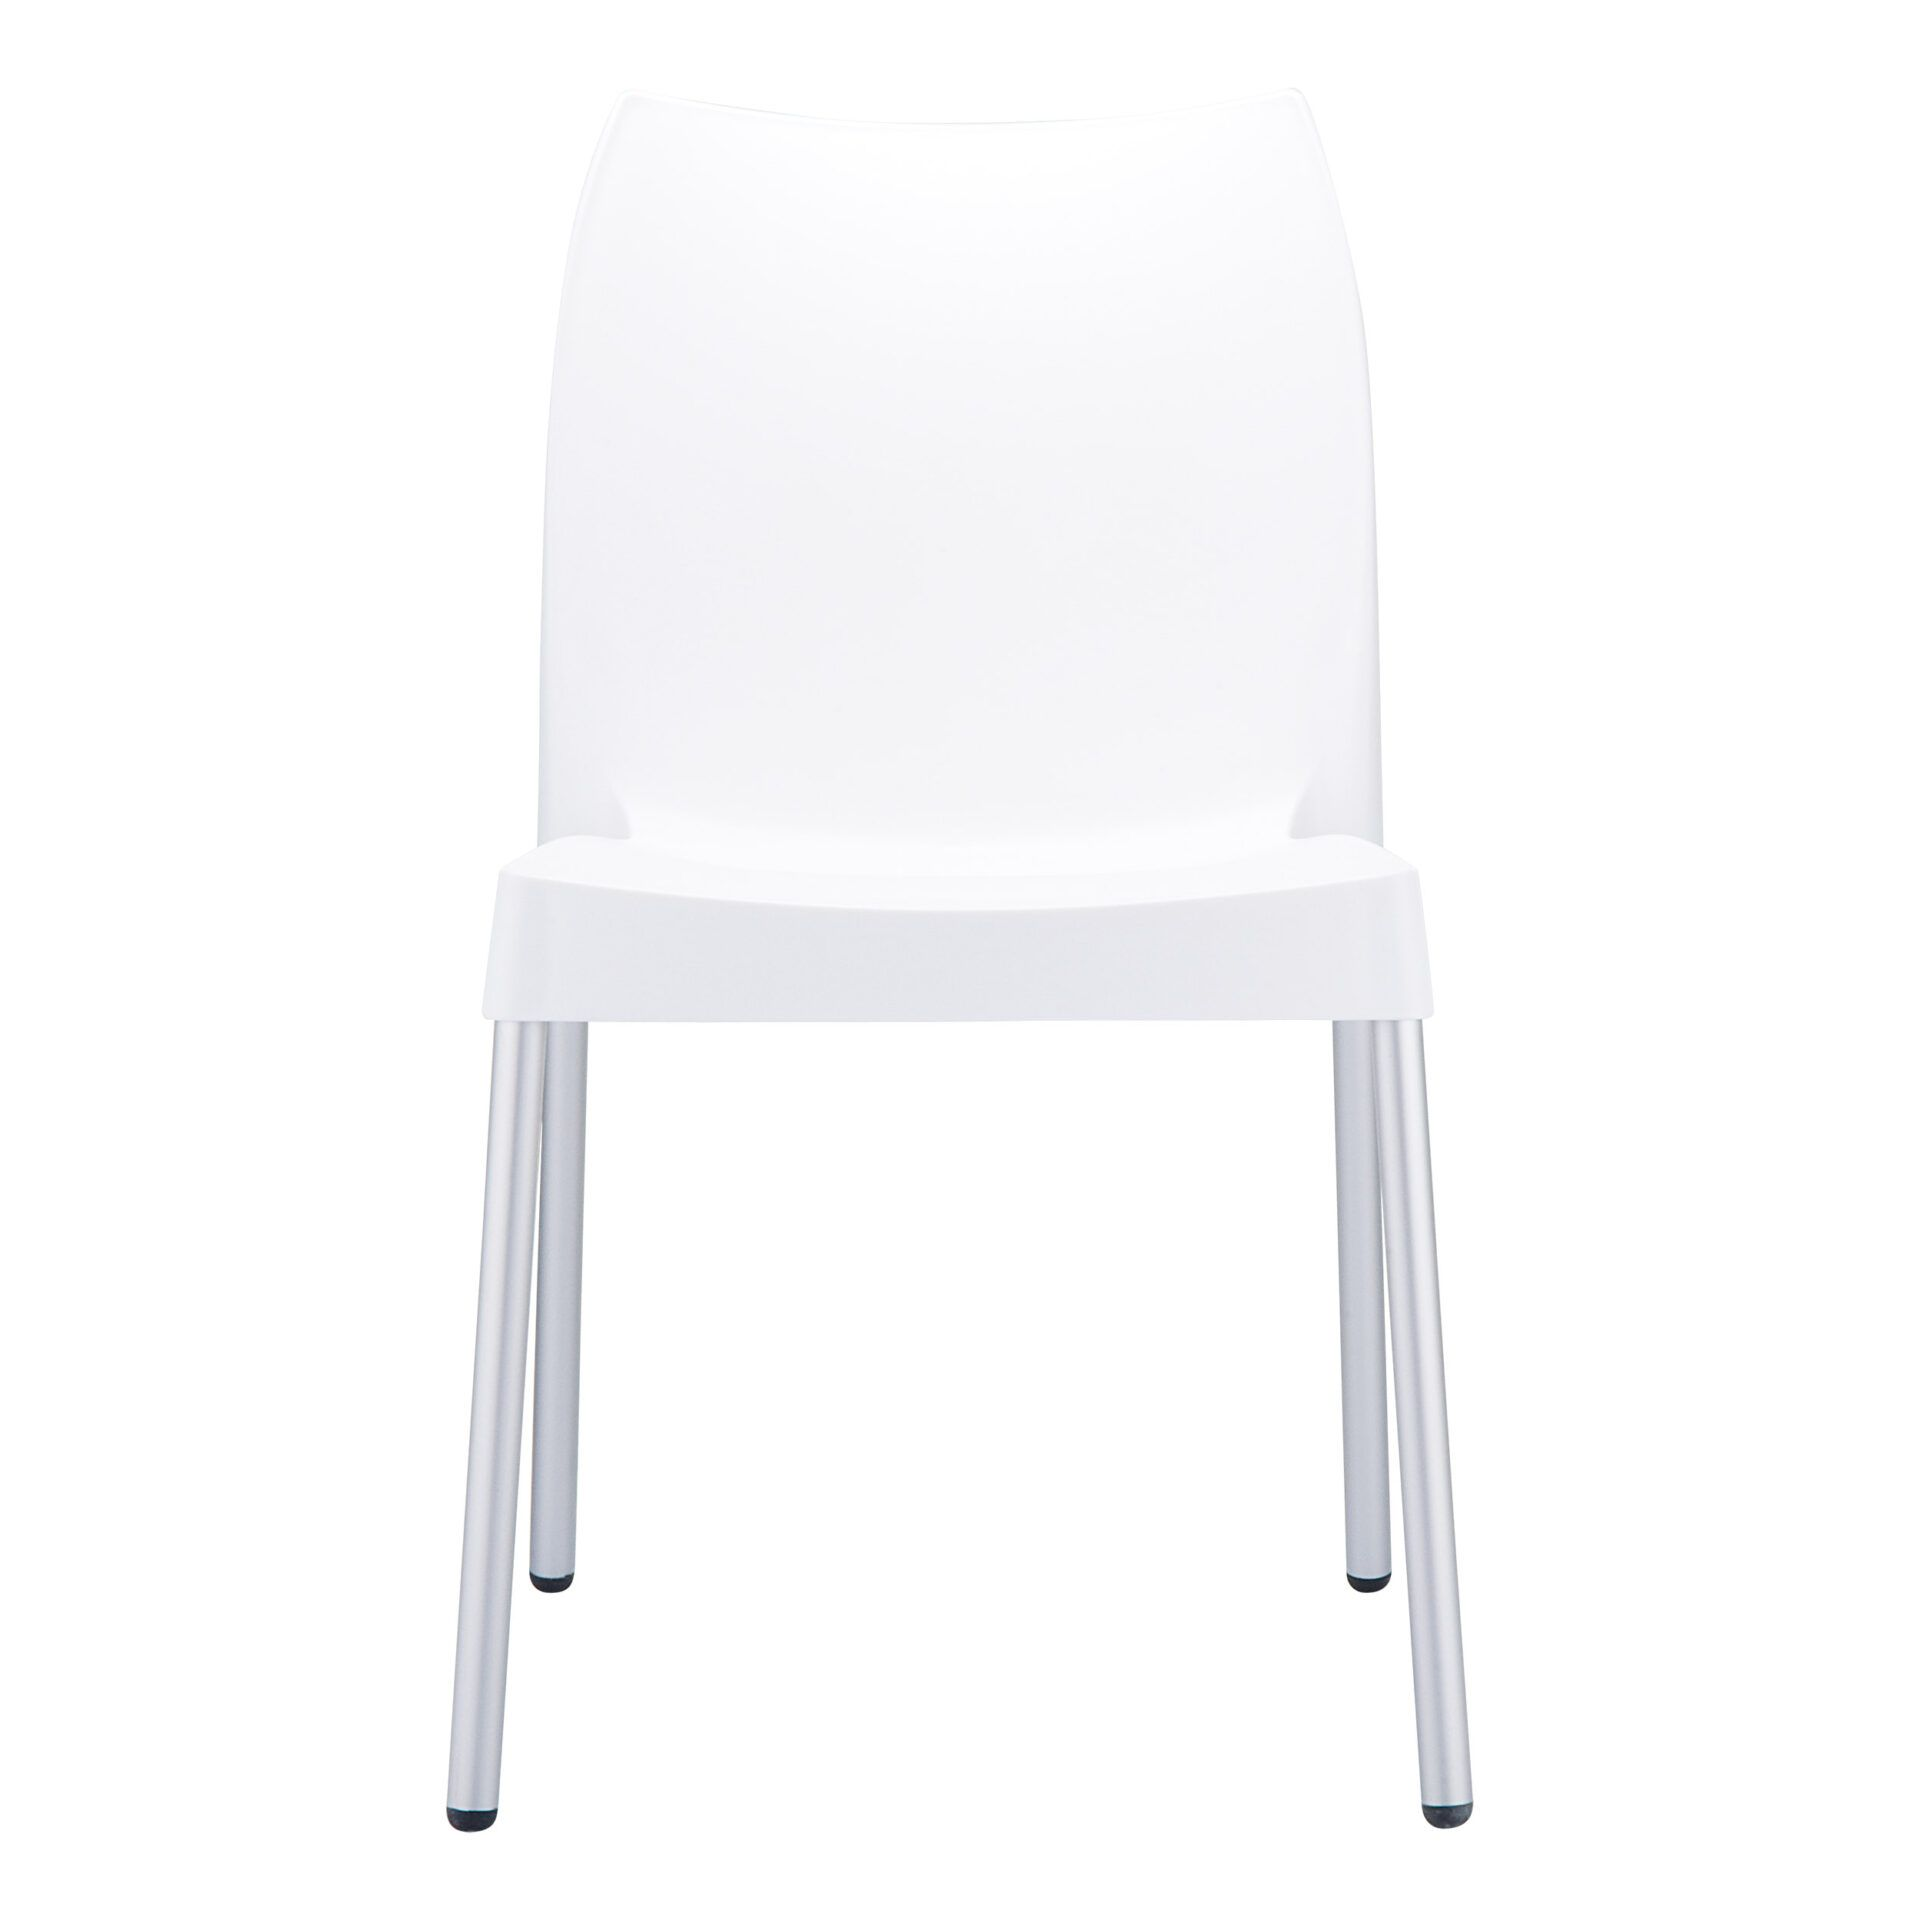 commercial outdoor hospitality seating vita chair white front